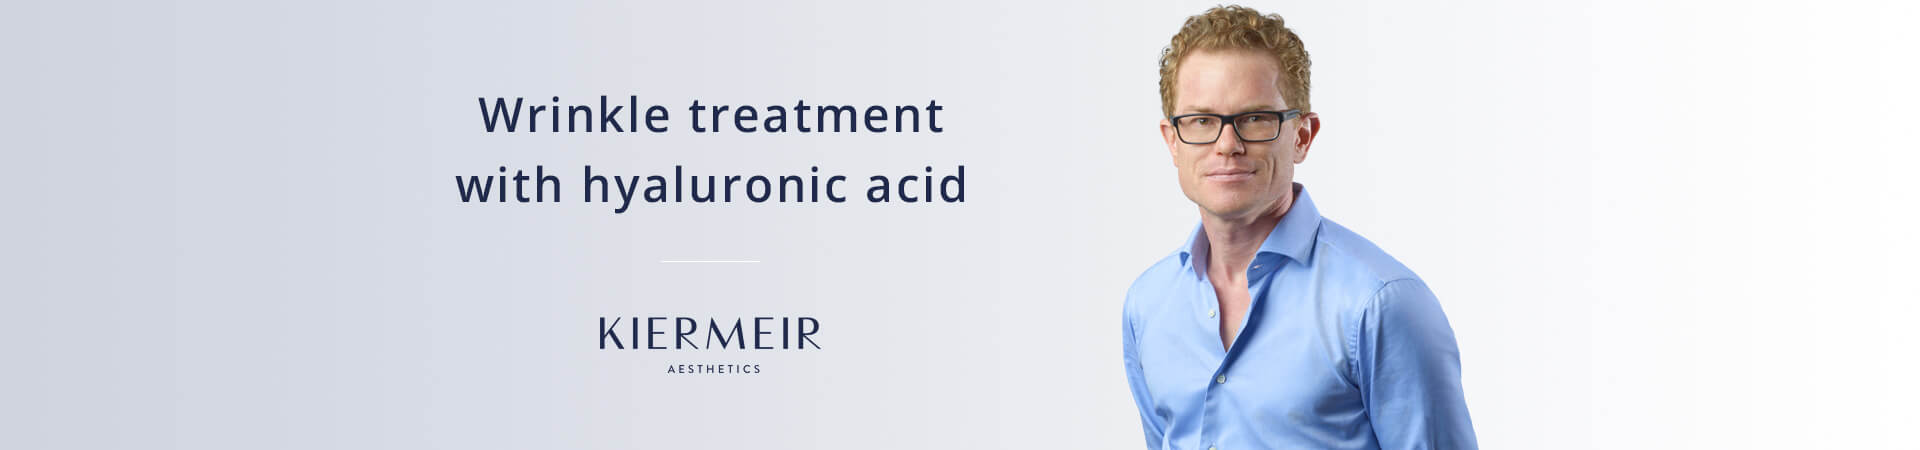 Wrinkle Treatment with Hyaluronic Acid in Bern by Dr. Kiermeir